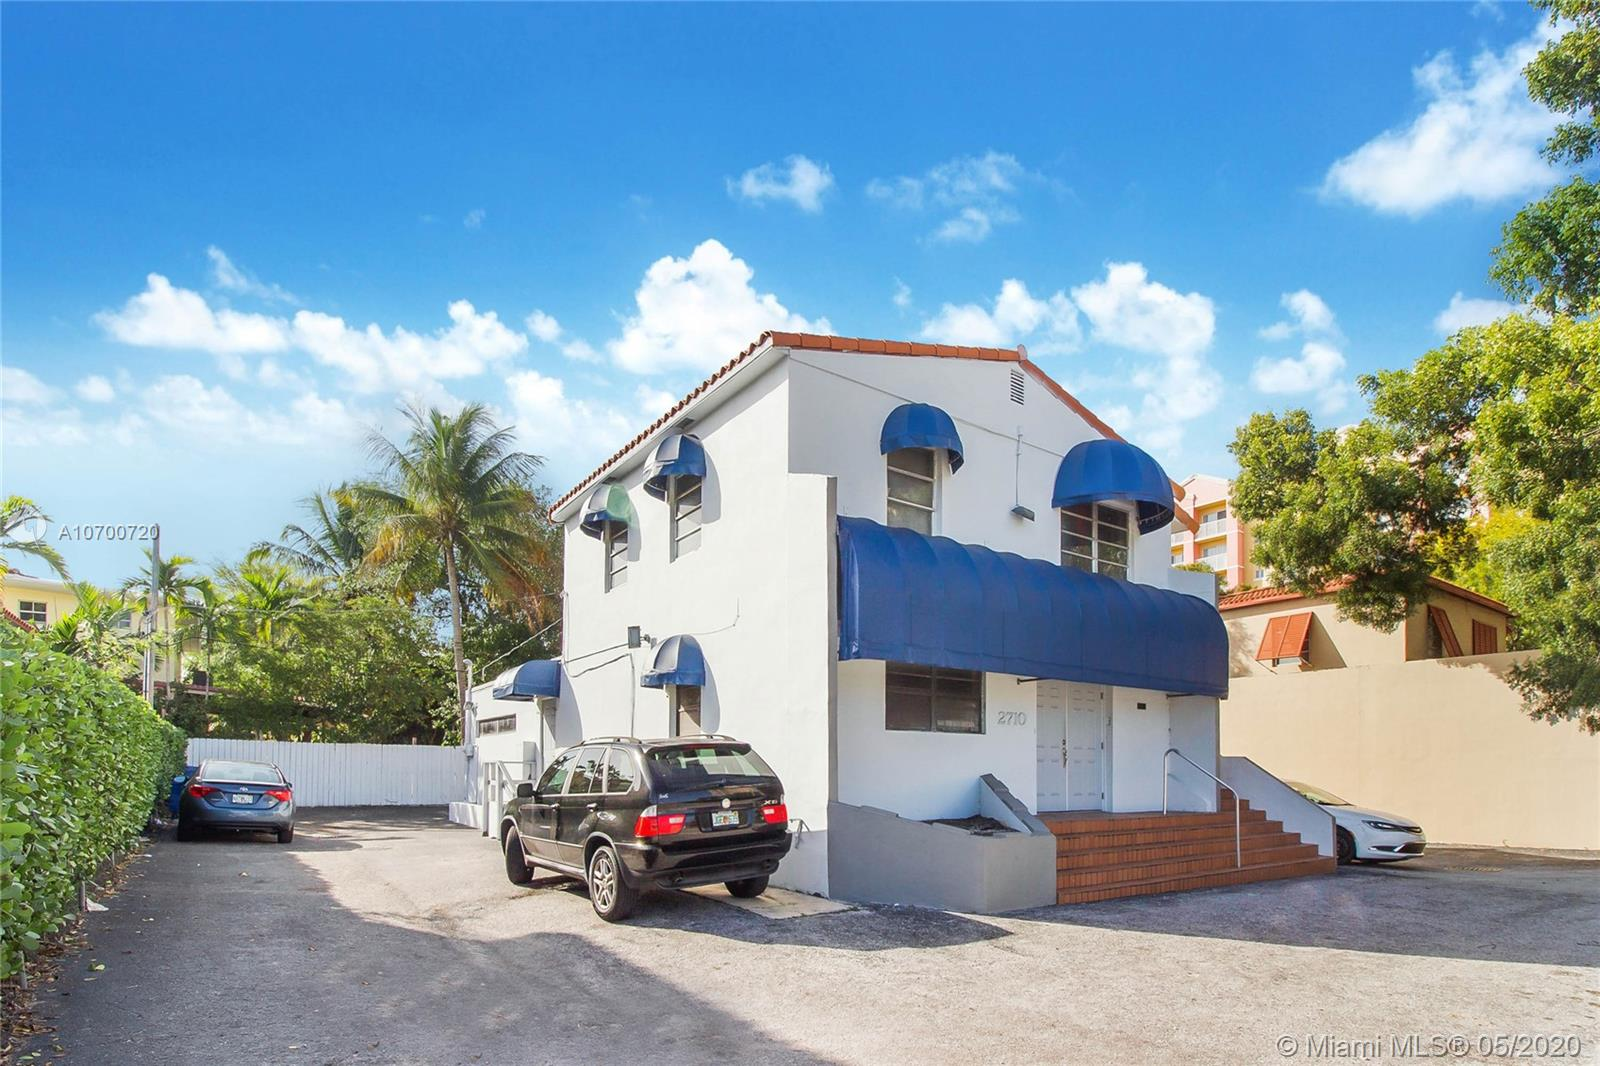 2710 S W 37th Ave  For Sale A10700720, FL